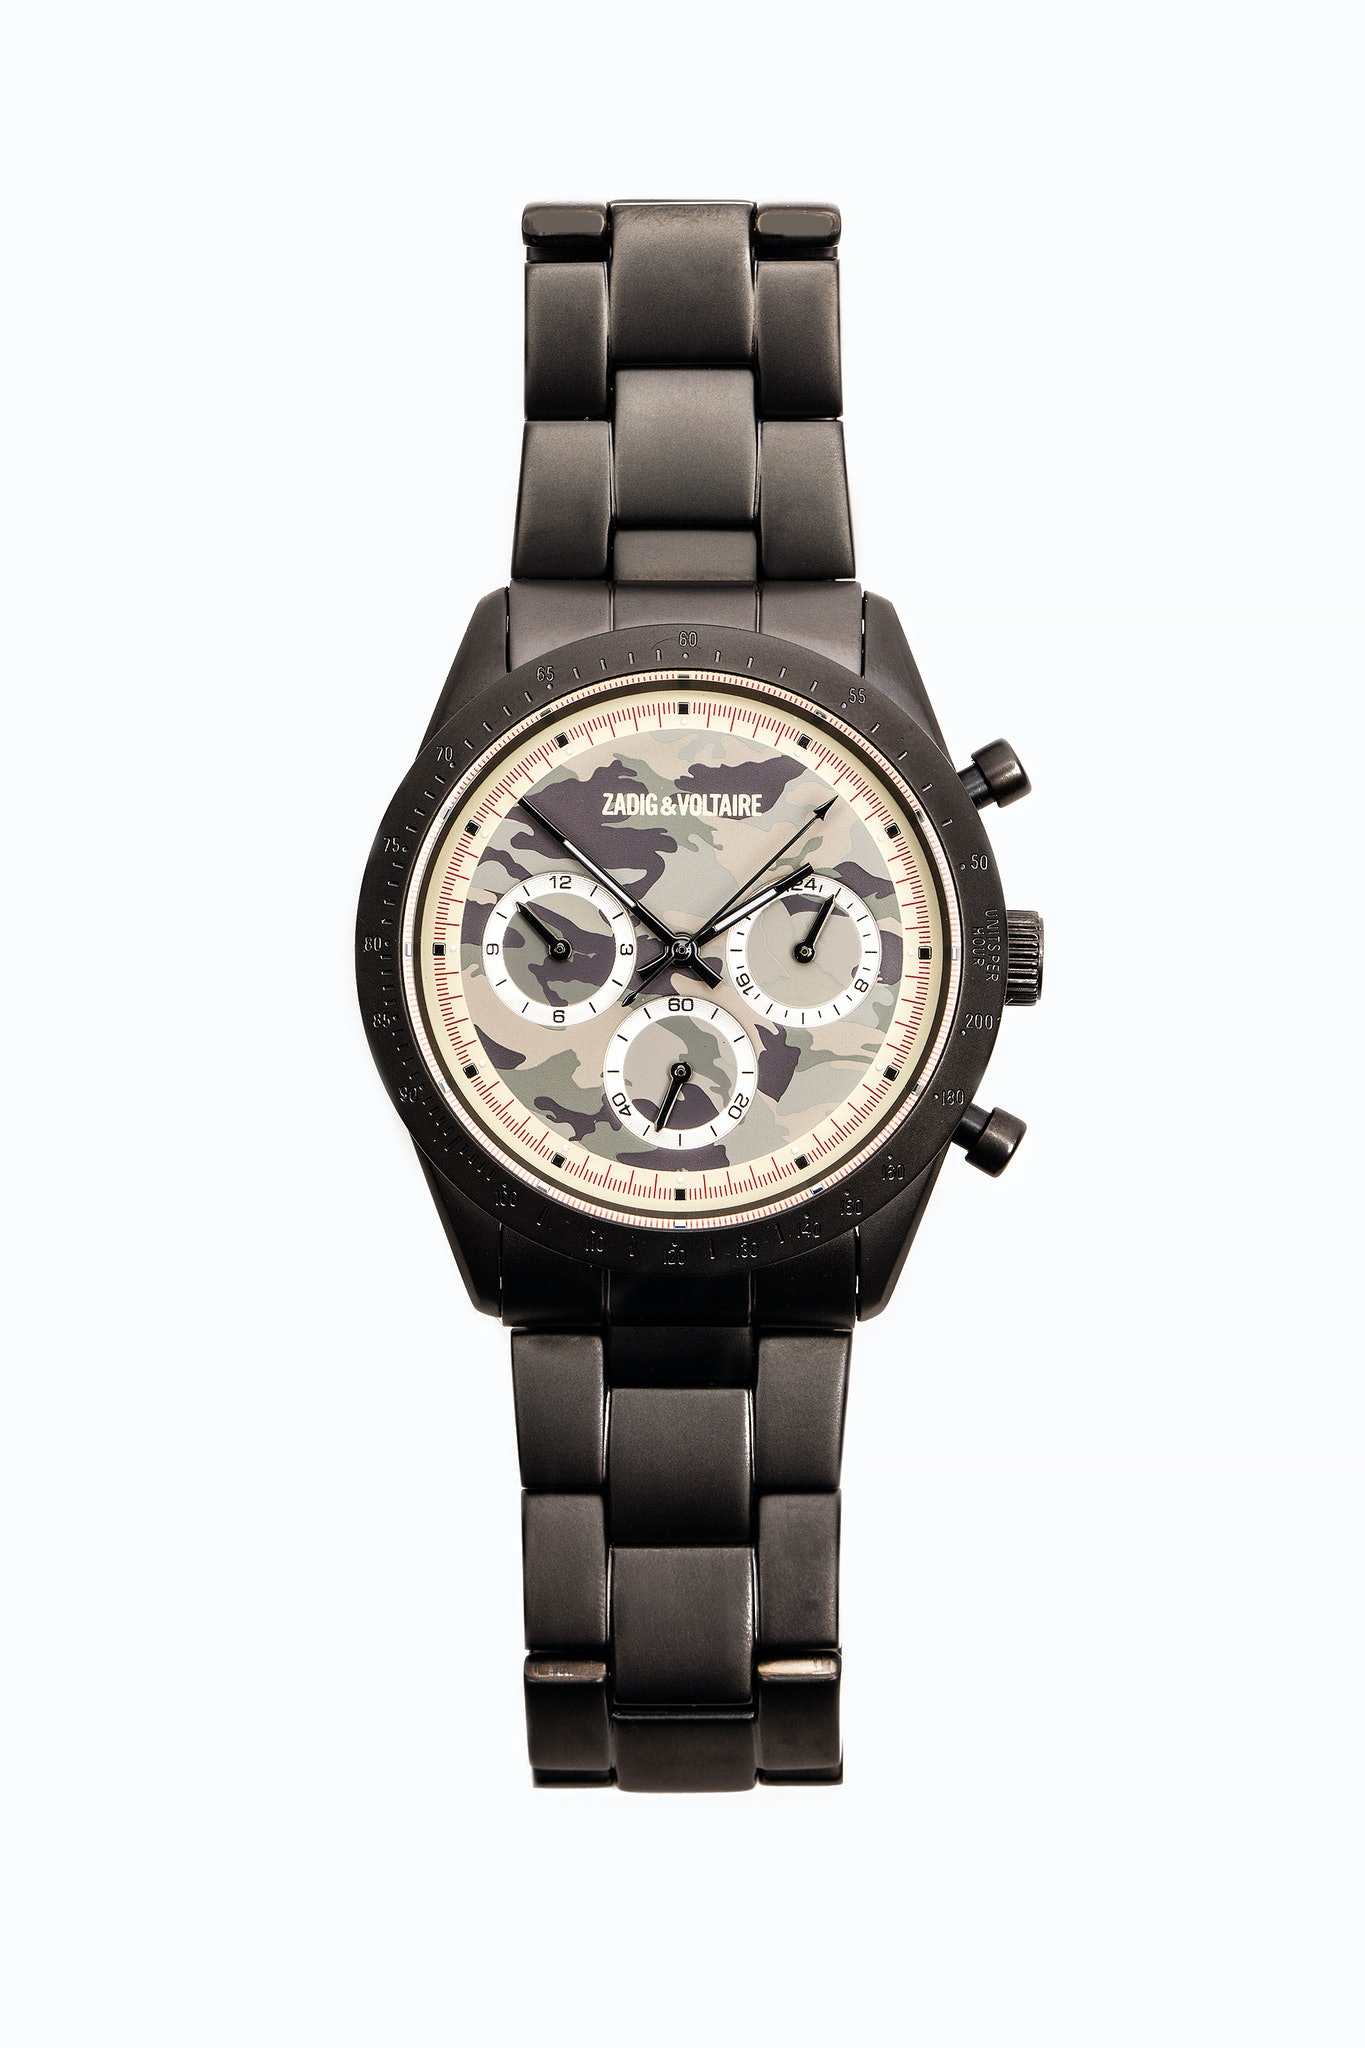 Master Camouflage 39 Watch